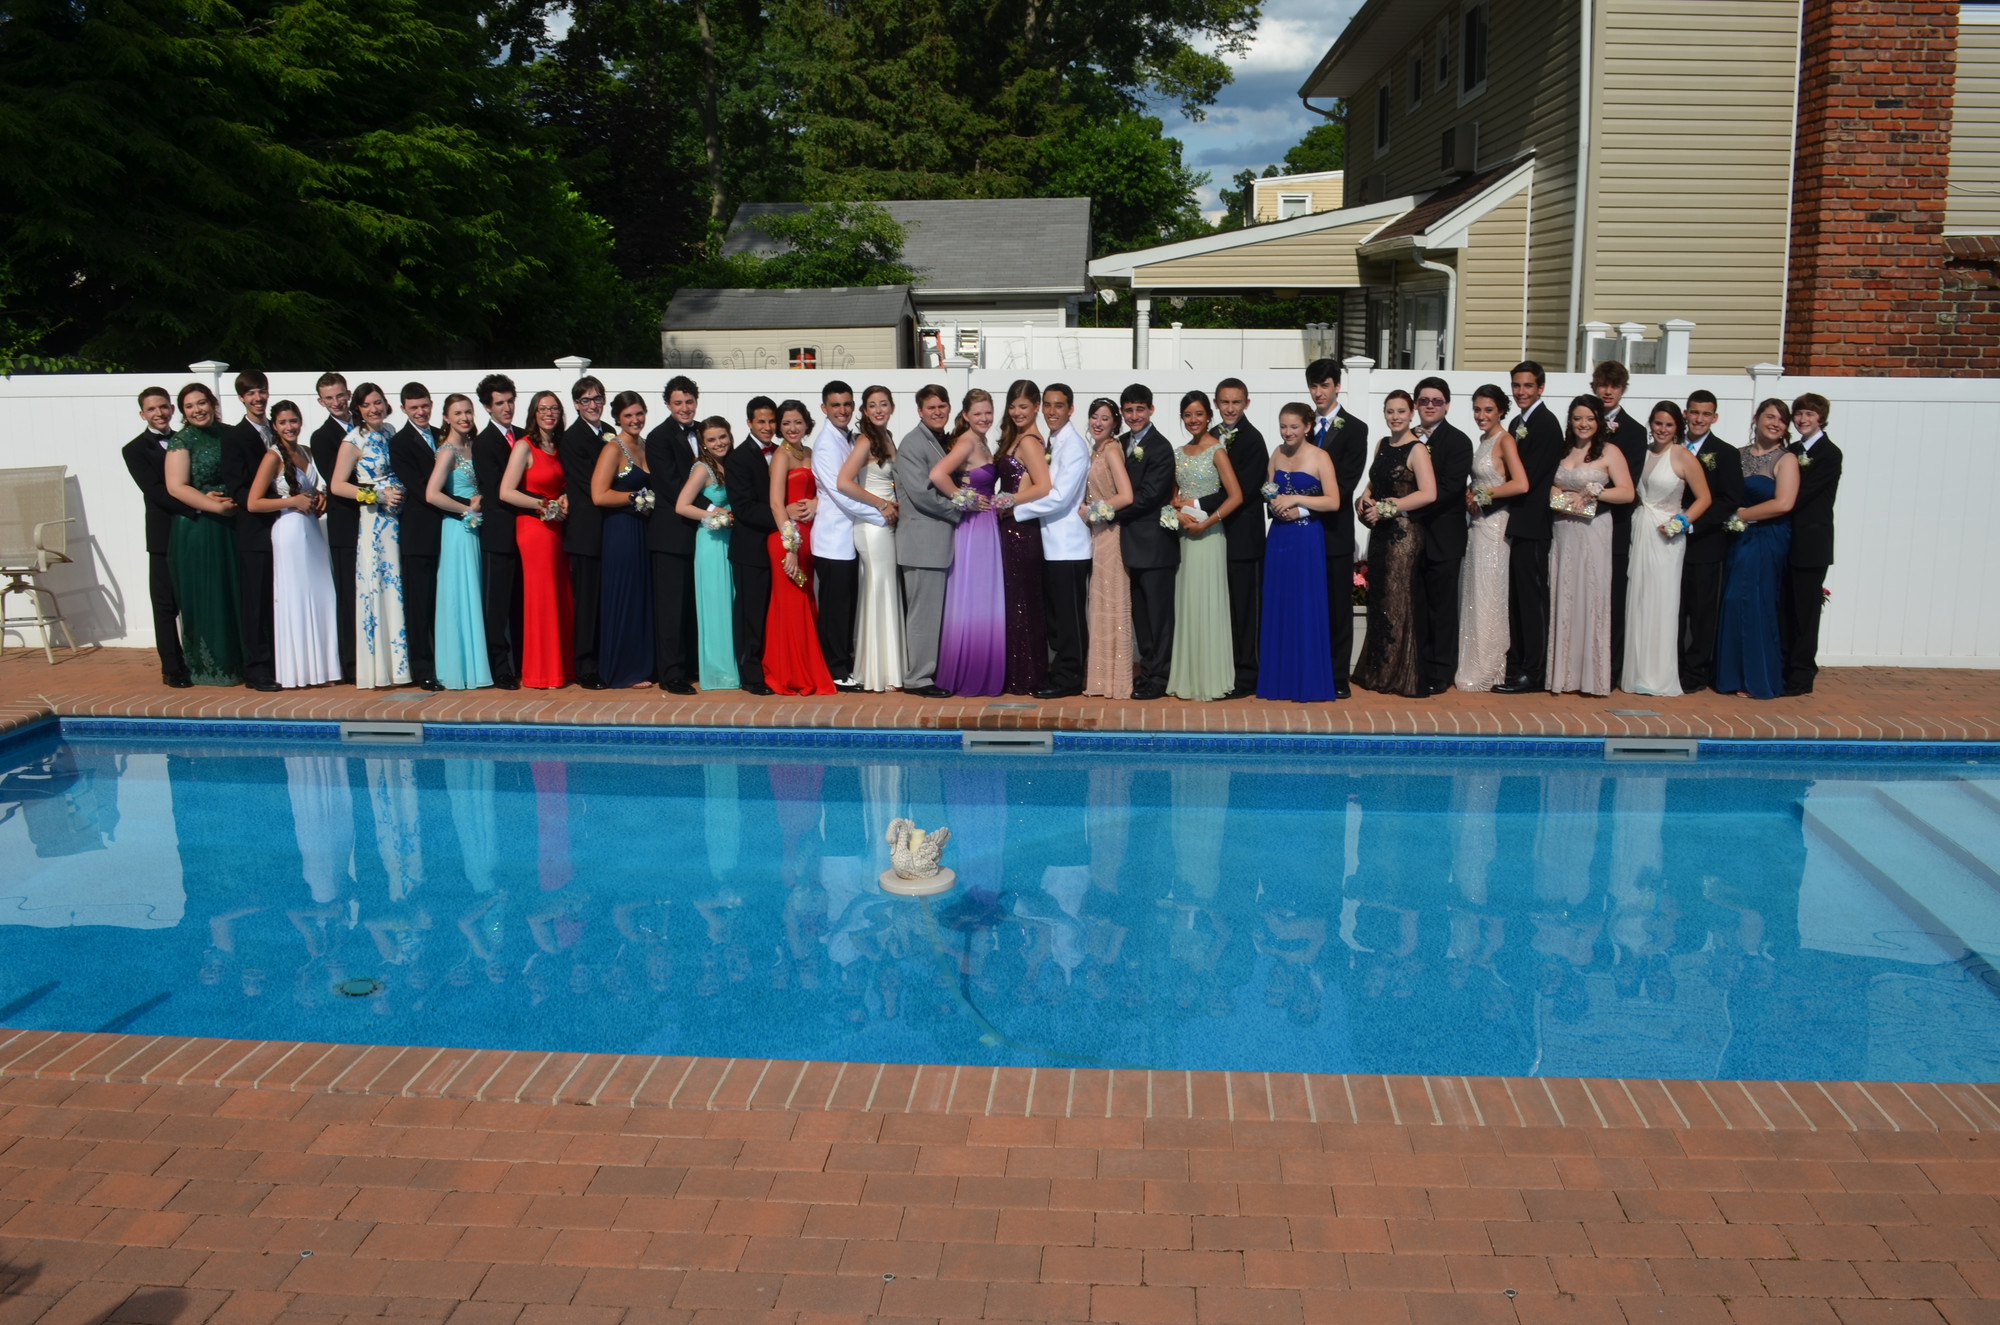 About 40 Calhoun students gathered at a pre-prom event held at the home of Matt Vogel, a senior who graduated on Sunday.